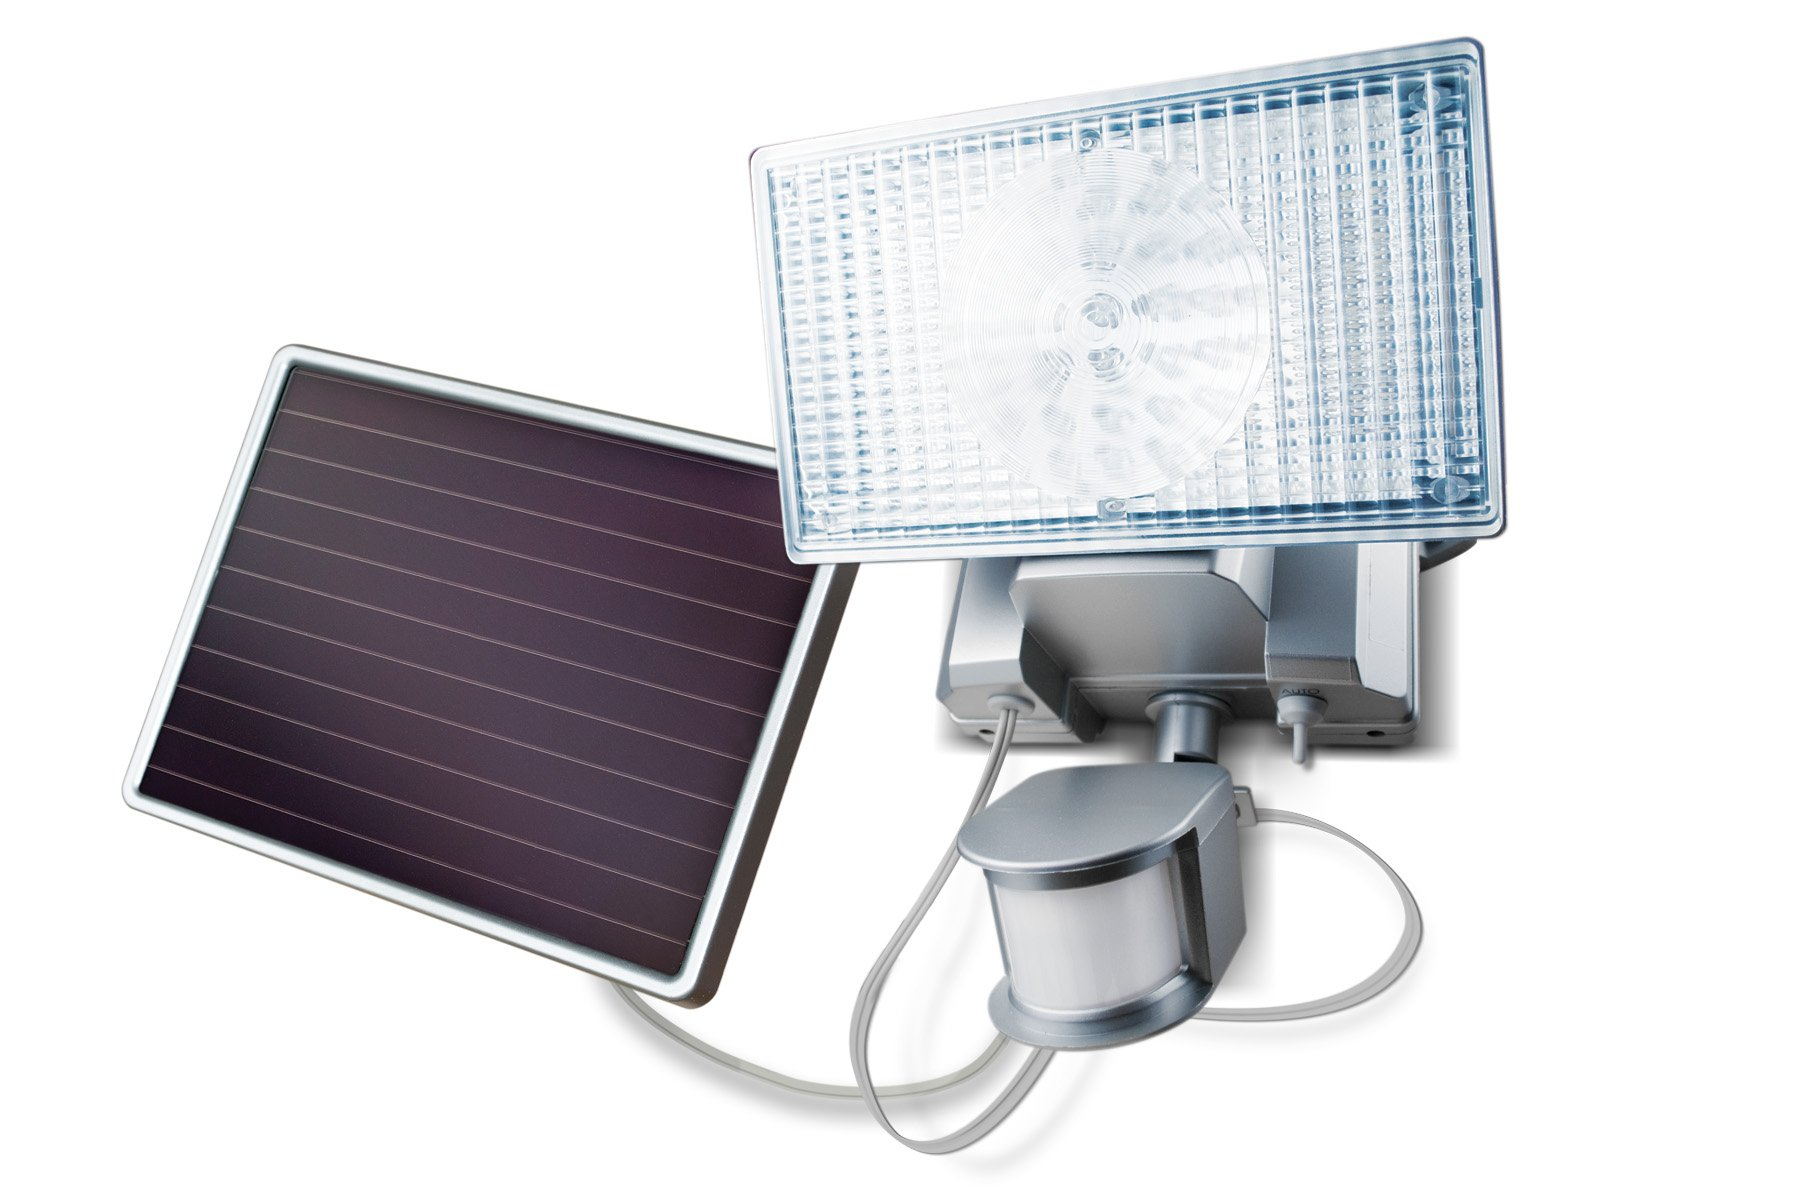 MAXSA Innovations 44449-L Silver Solar-Powered 100 LED Motion-Activated Outdoor Security Floodlight by Maxsa Innovations